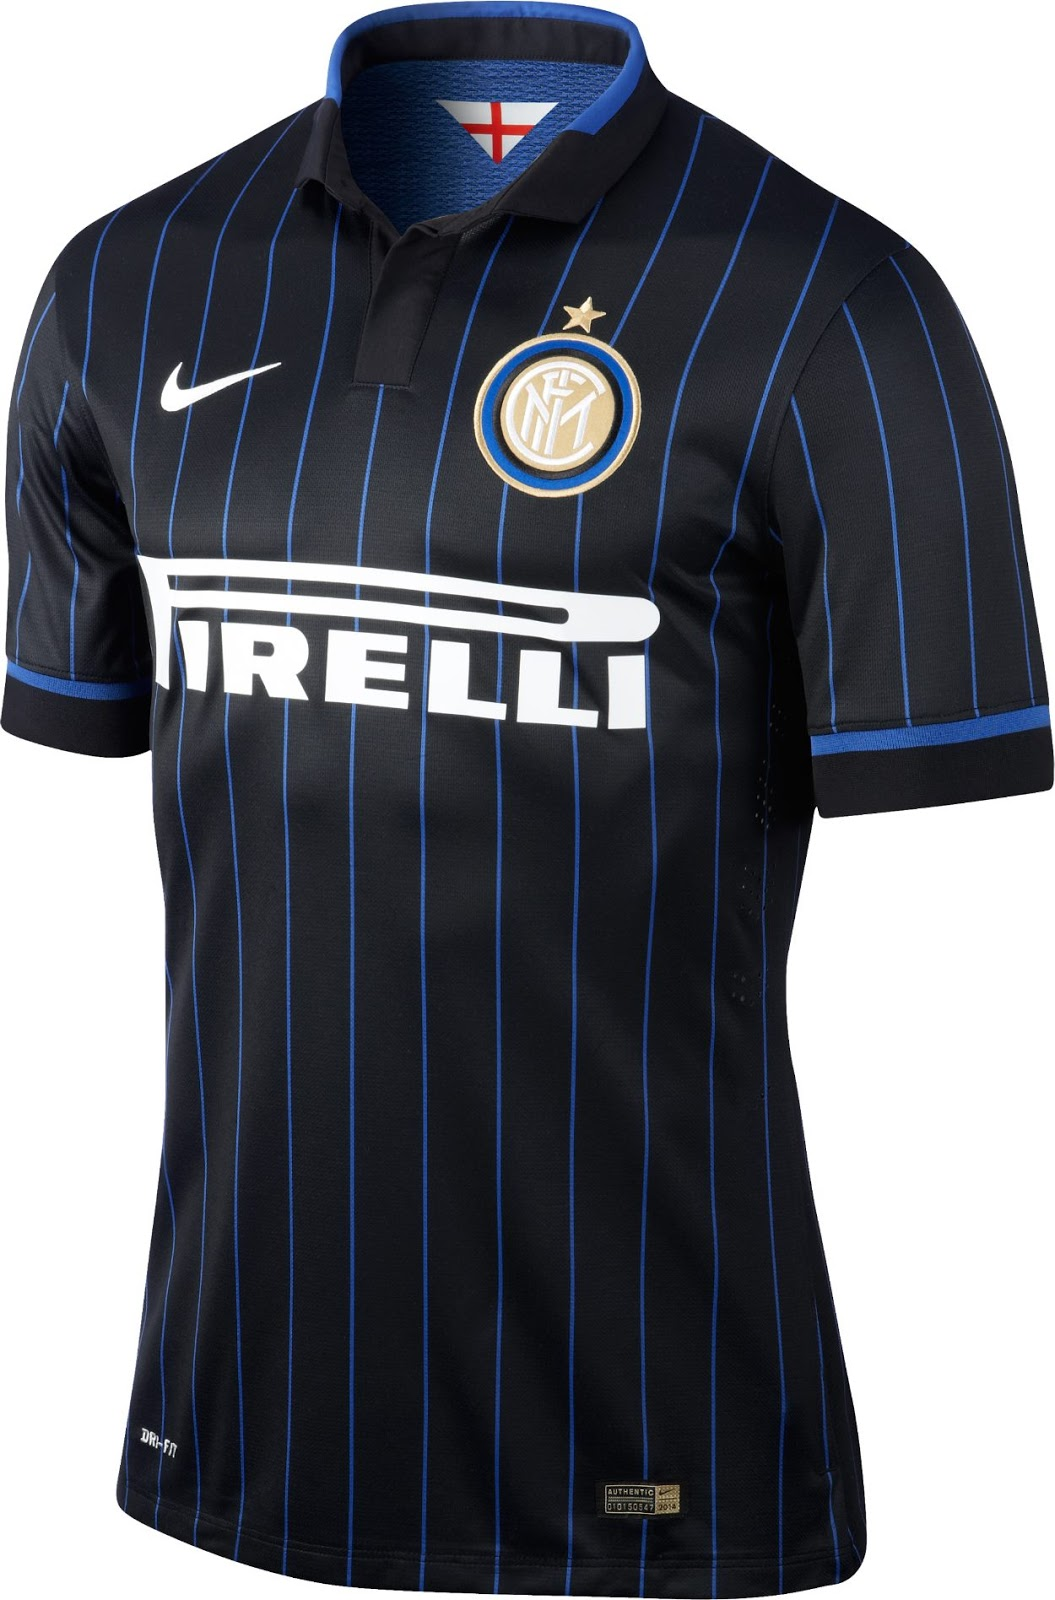 6d4f6a4f5ac 14-15 Inter Milan Home Soccer Jersey Shirt (Player Version)